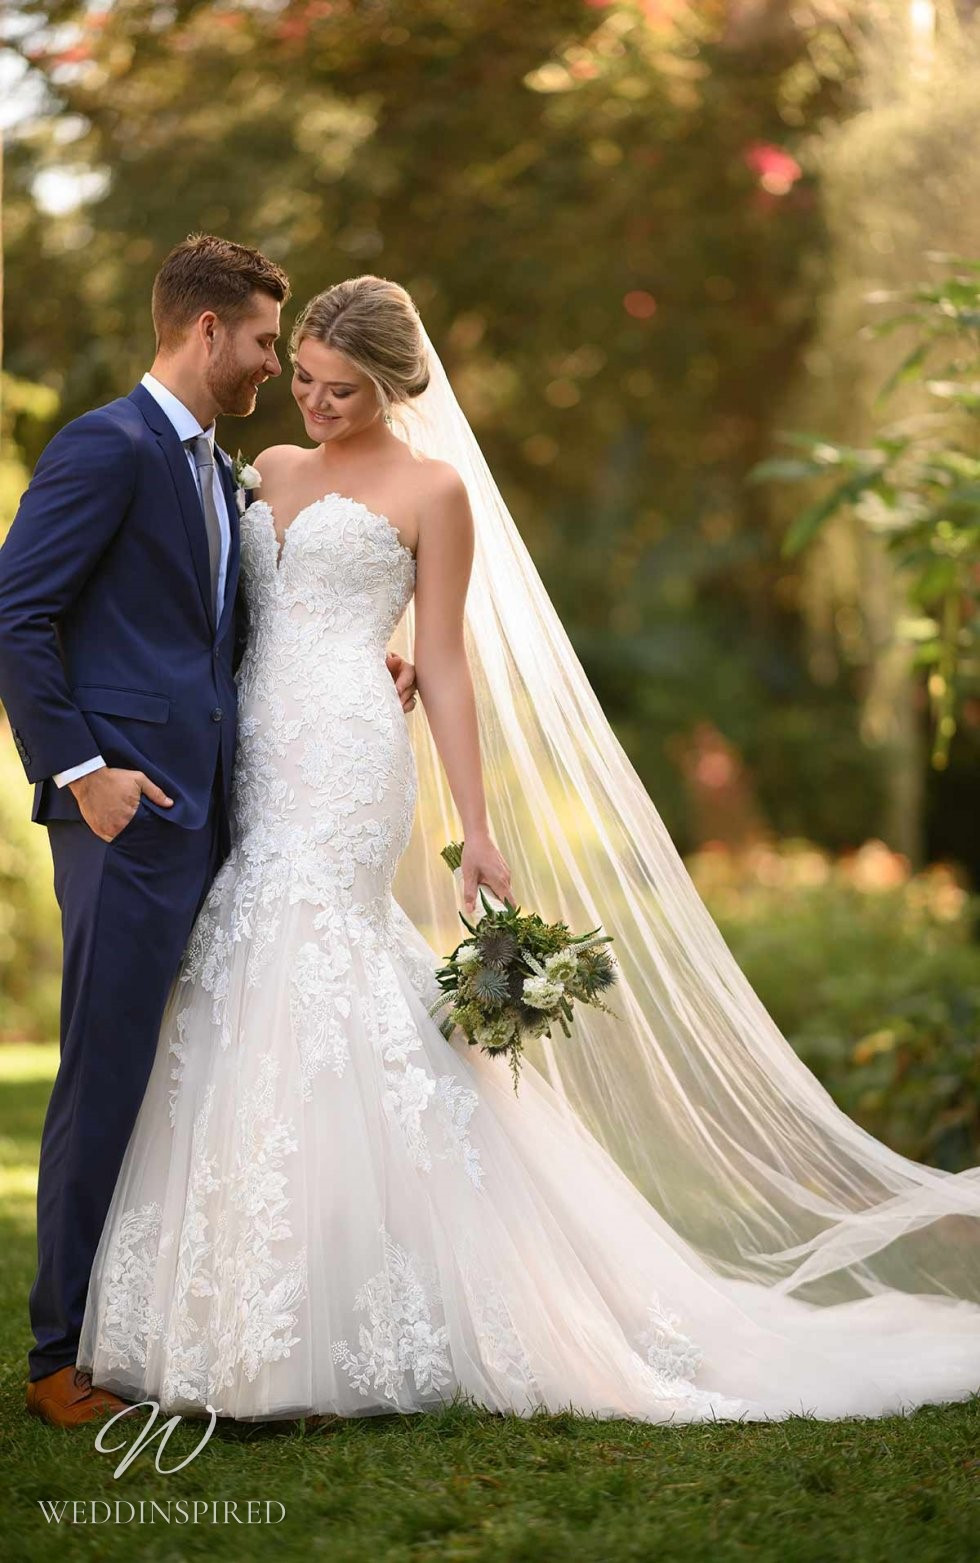 An Essense of Australia strapless lace and tulle mermaid wedding dress